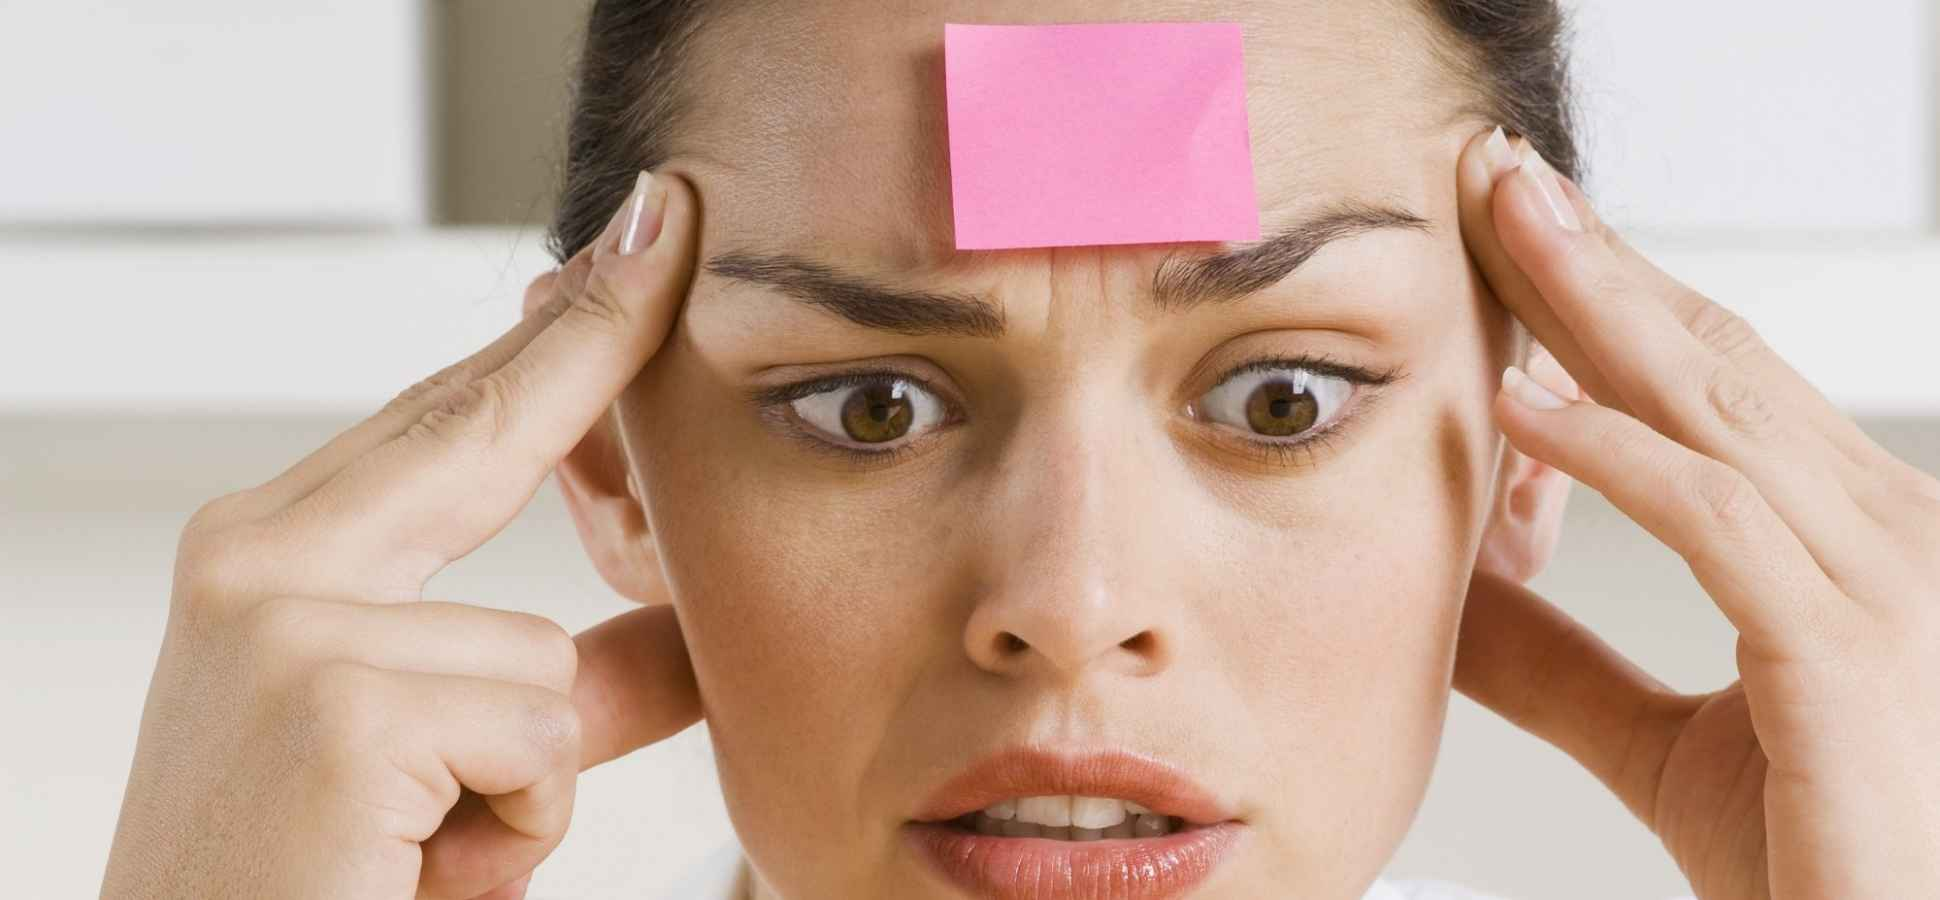 10 Simple Brain Tricks That Will improve Your Memory